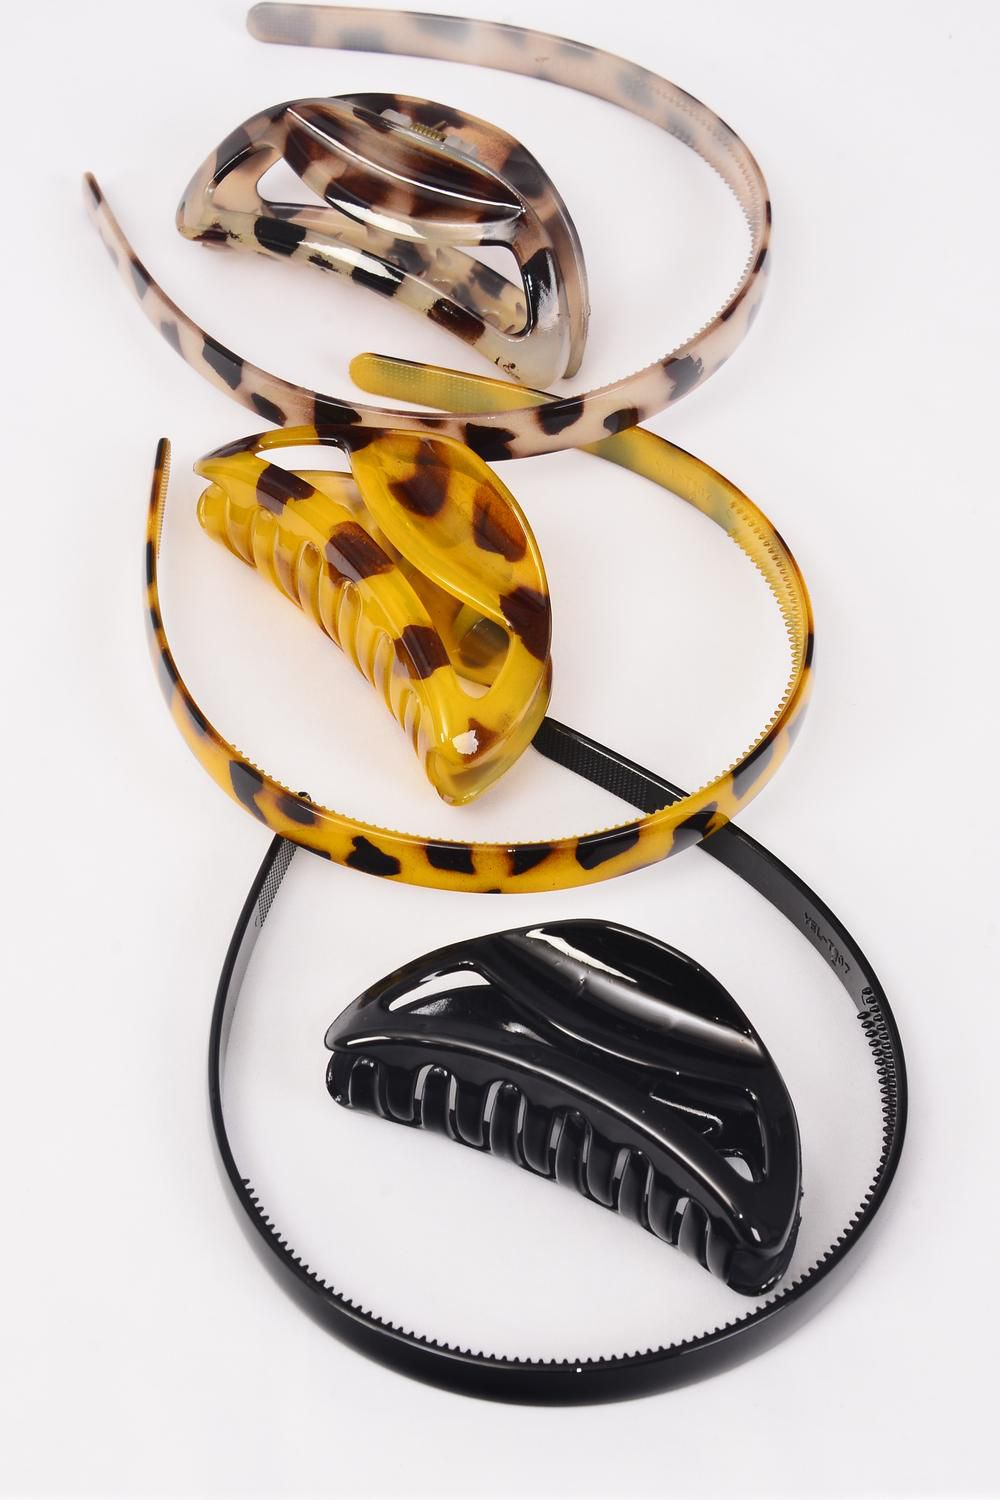 Headband Amp Jaw Clip Sets Leopard Print Dz Headband 0 75